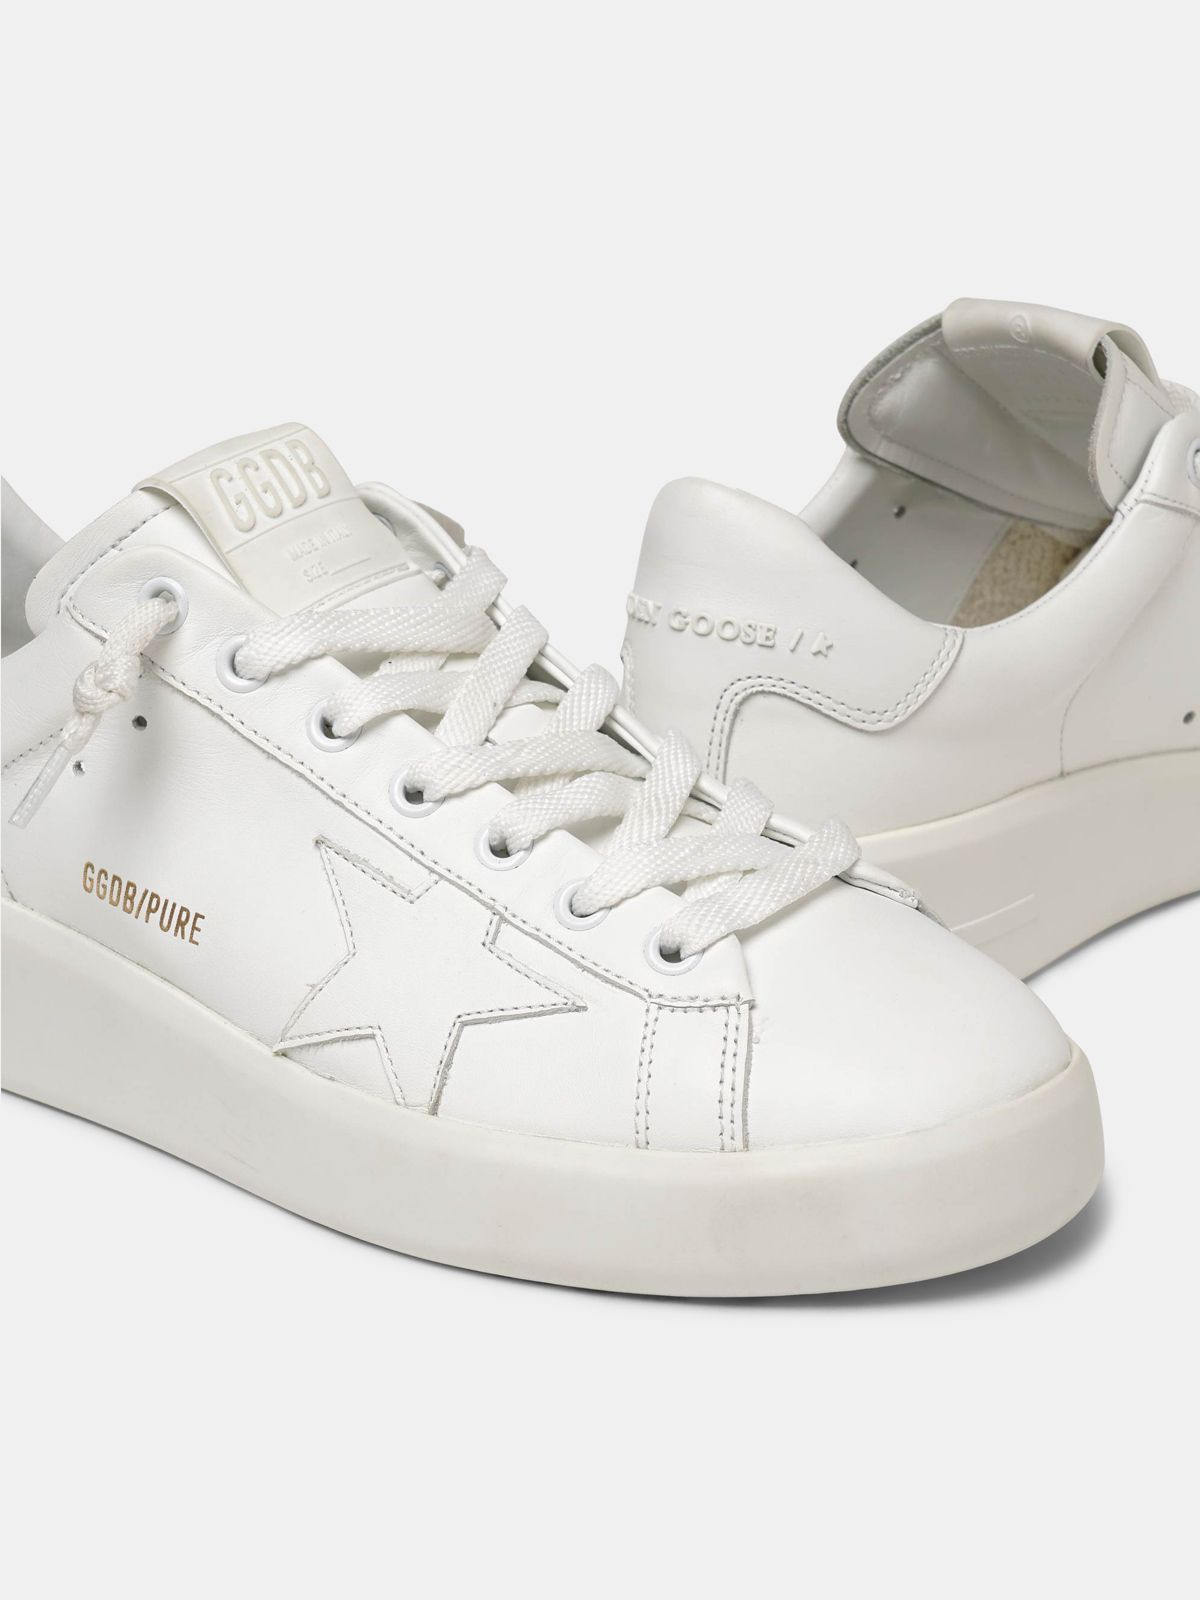 Golden Goose - PURESTAR white sneakers in